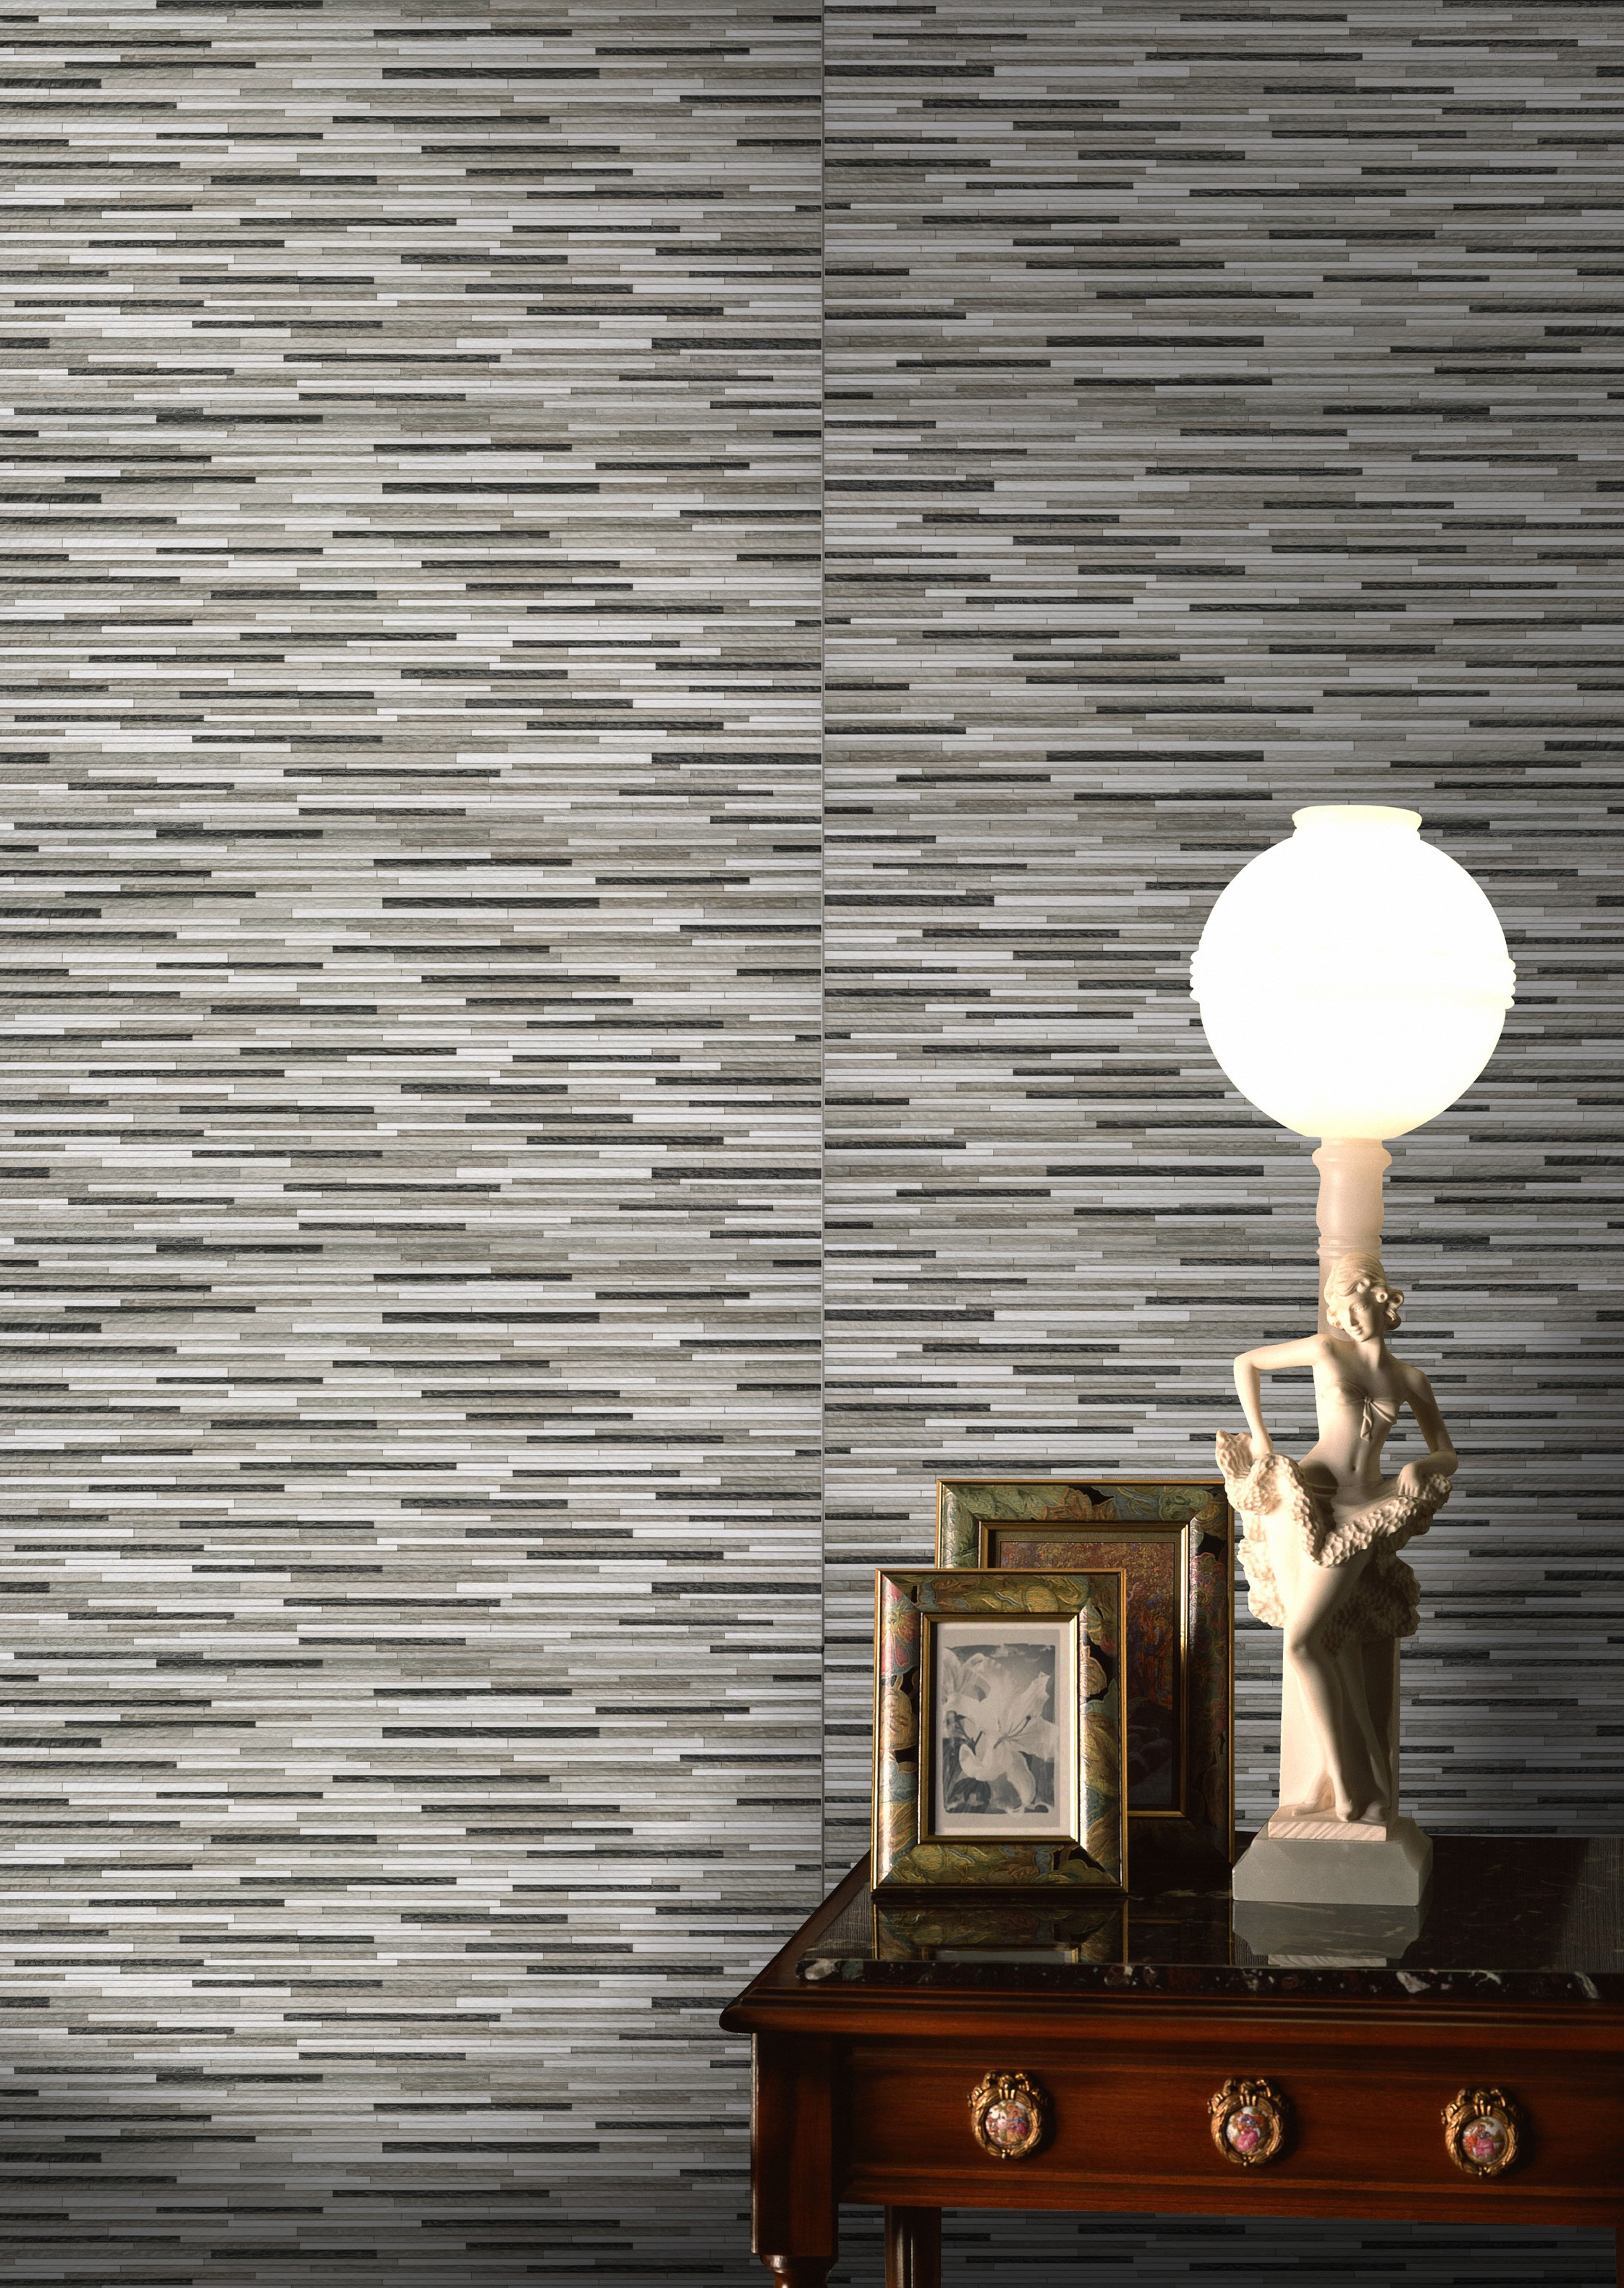 Lovely linear textured floor wall tiles linear floor and wall tiles dailygadgetfo Image collections